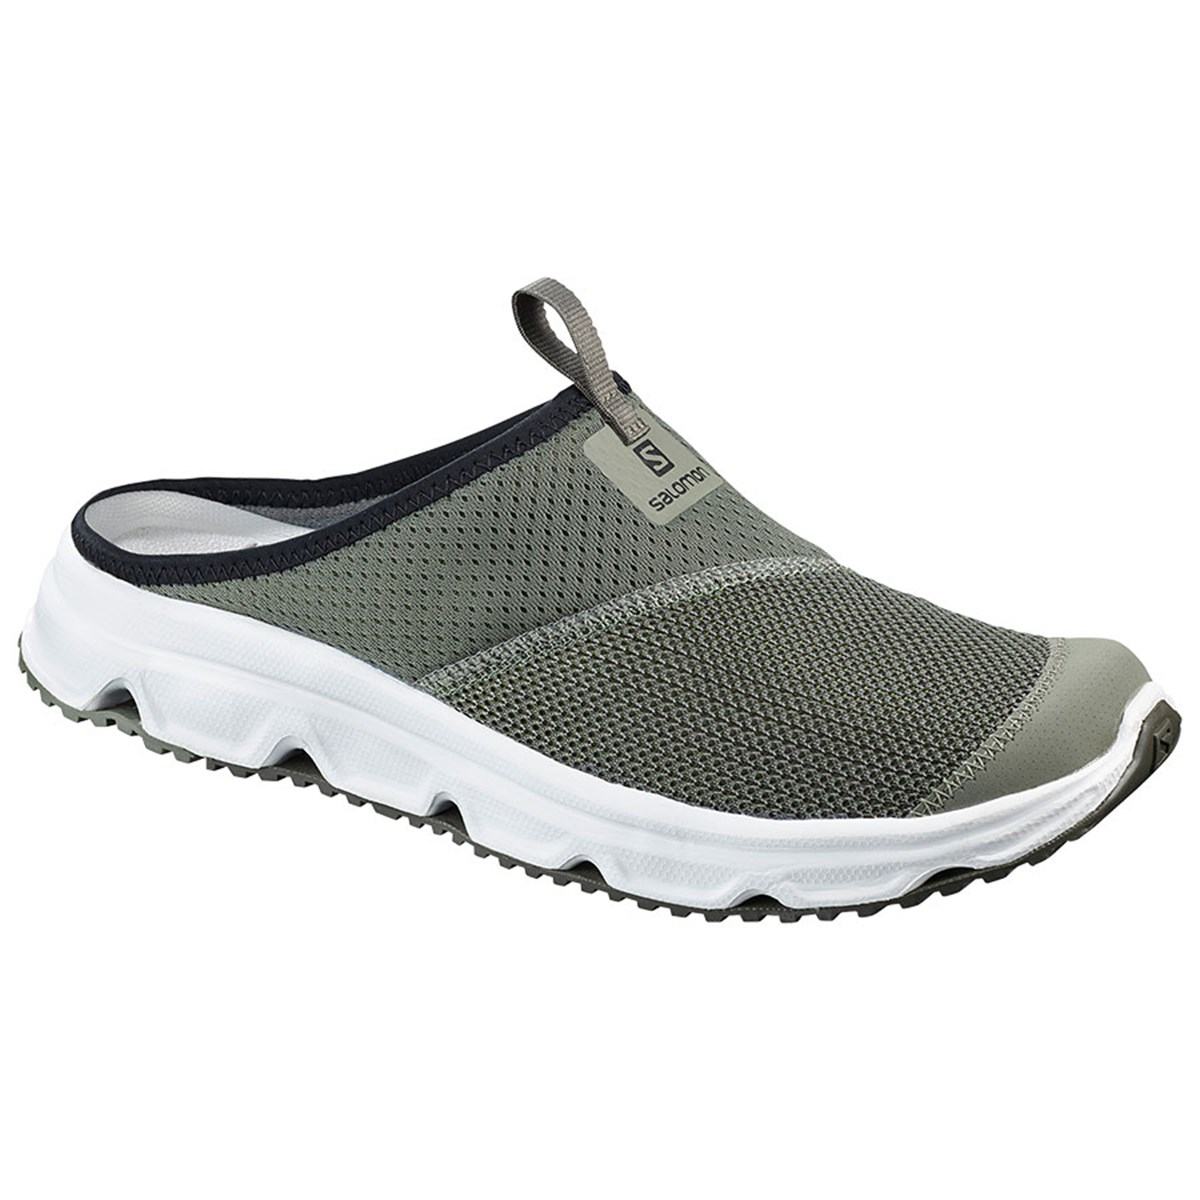 salomon outdoor ayakkab? rx slide 4.0 mexico